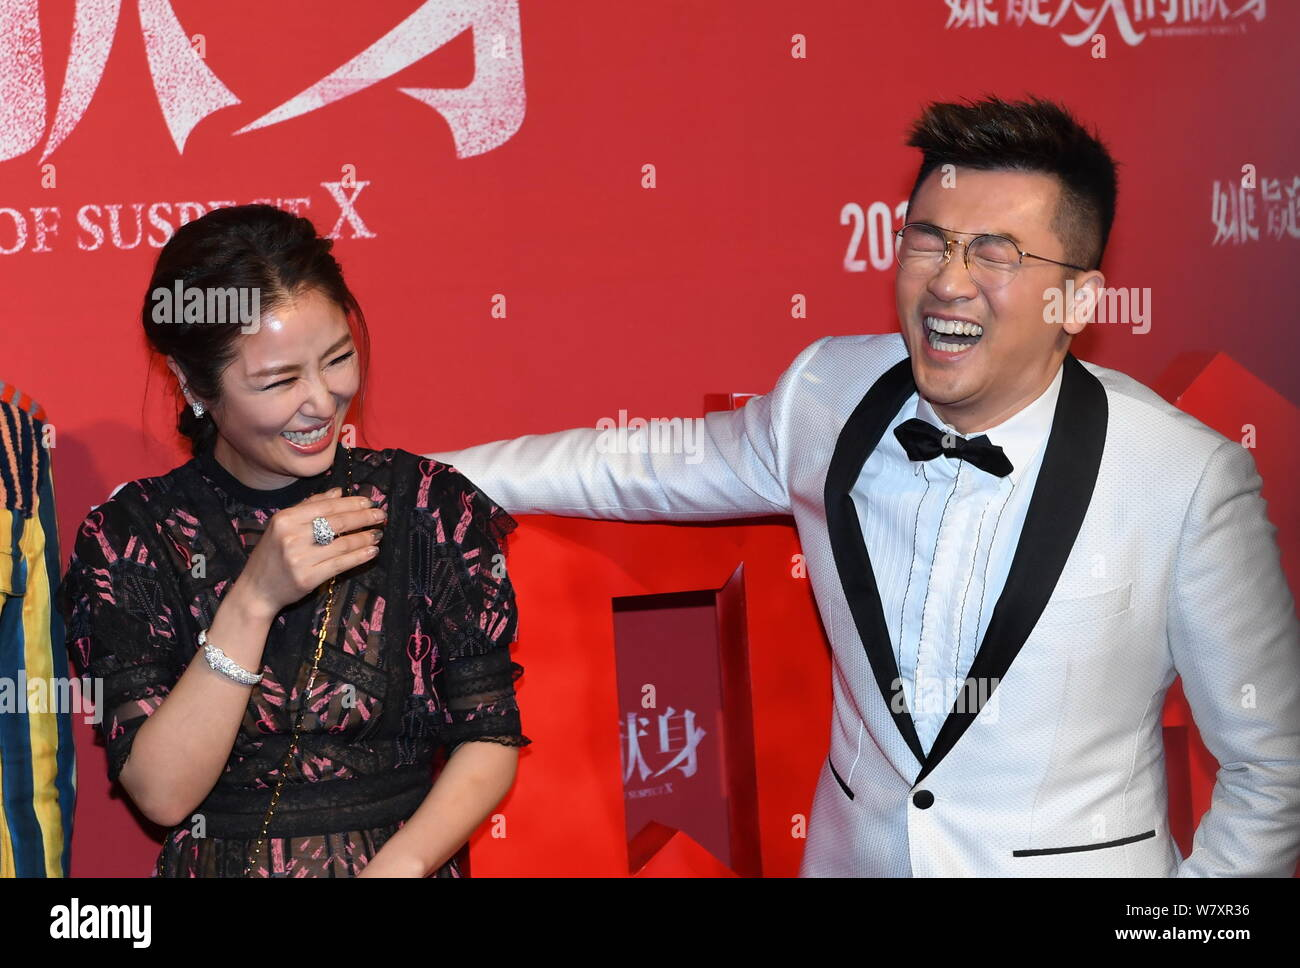 Taiwanese actress Ruby Lin, left, interacts with actor and director Alec Su at the premiere of their new movie ''The Devotion of Suspect X'' in Beijin Stock Photo